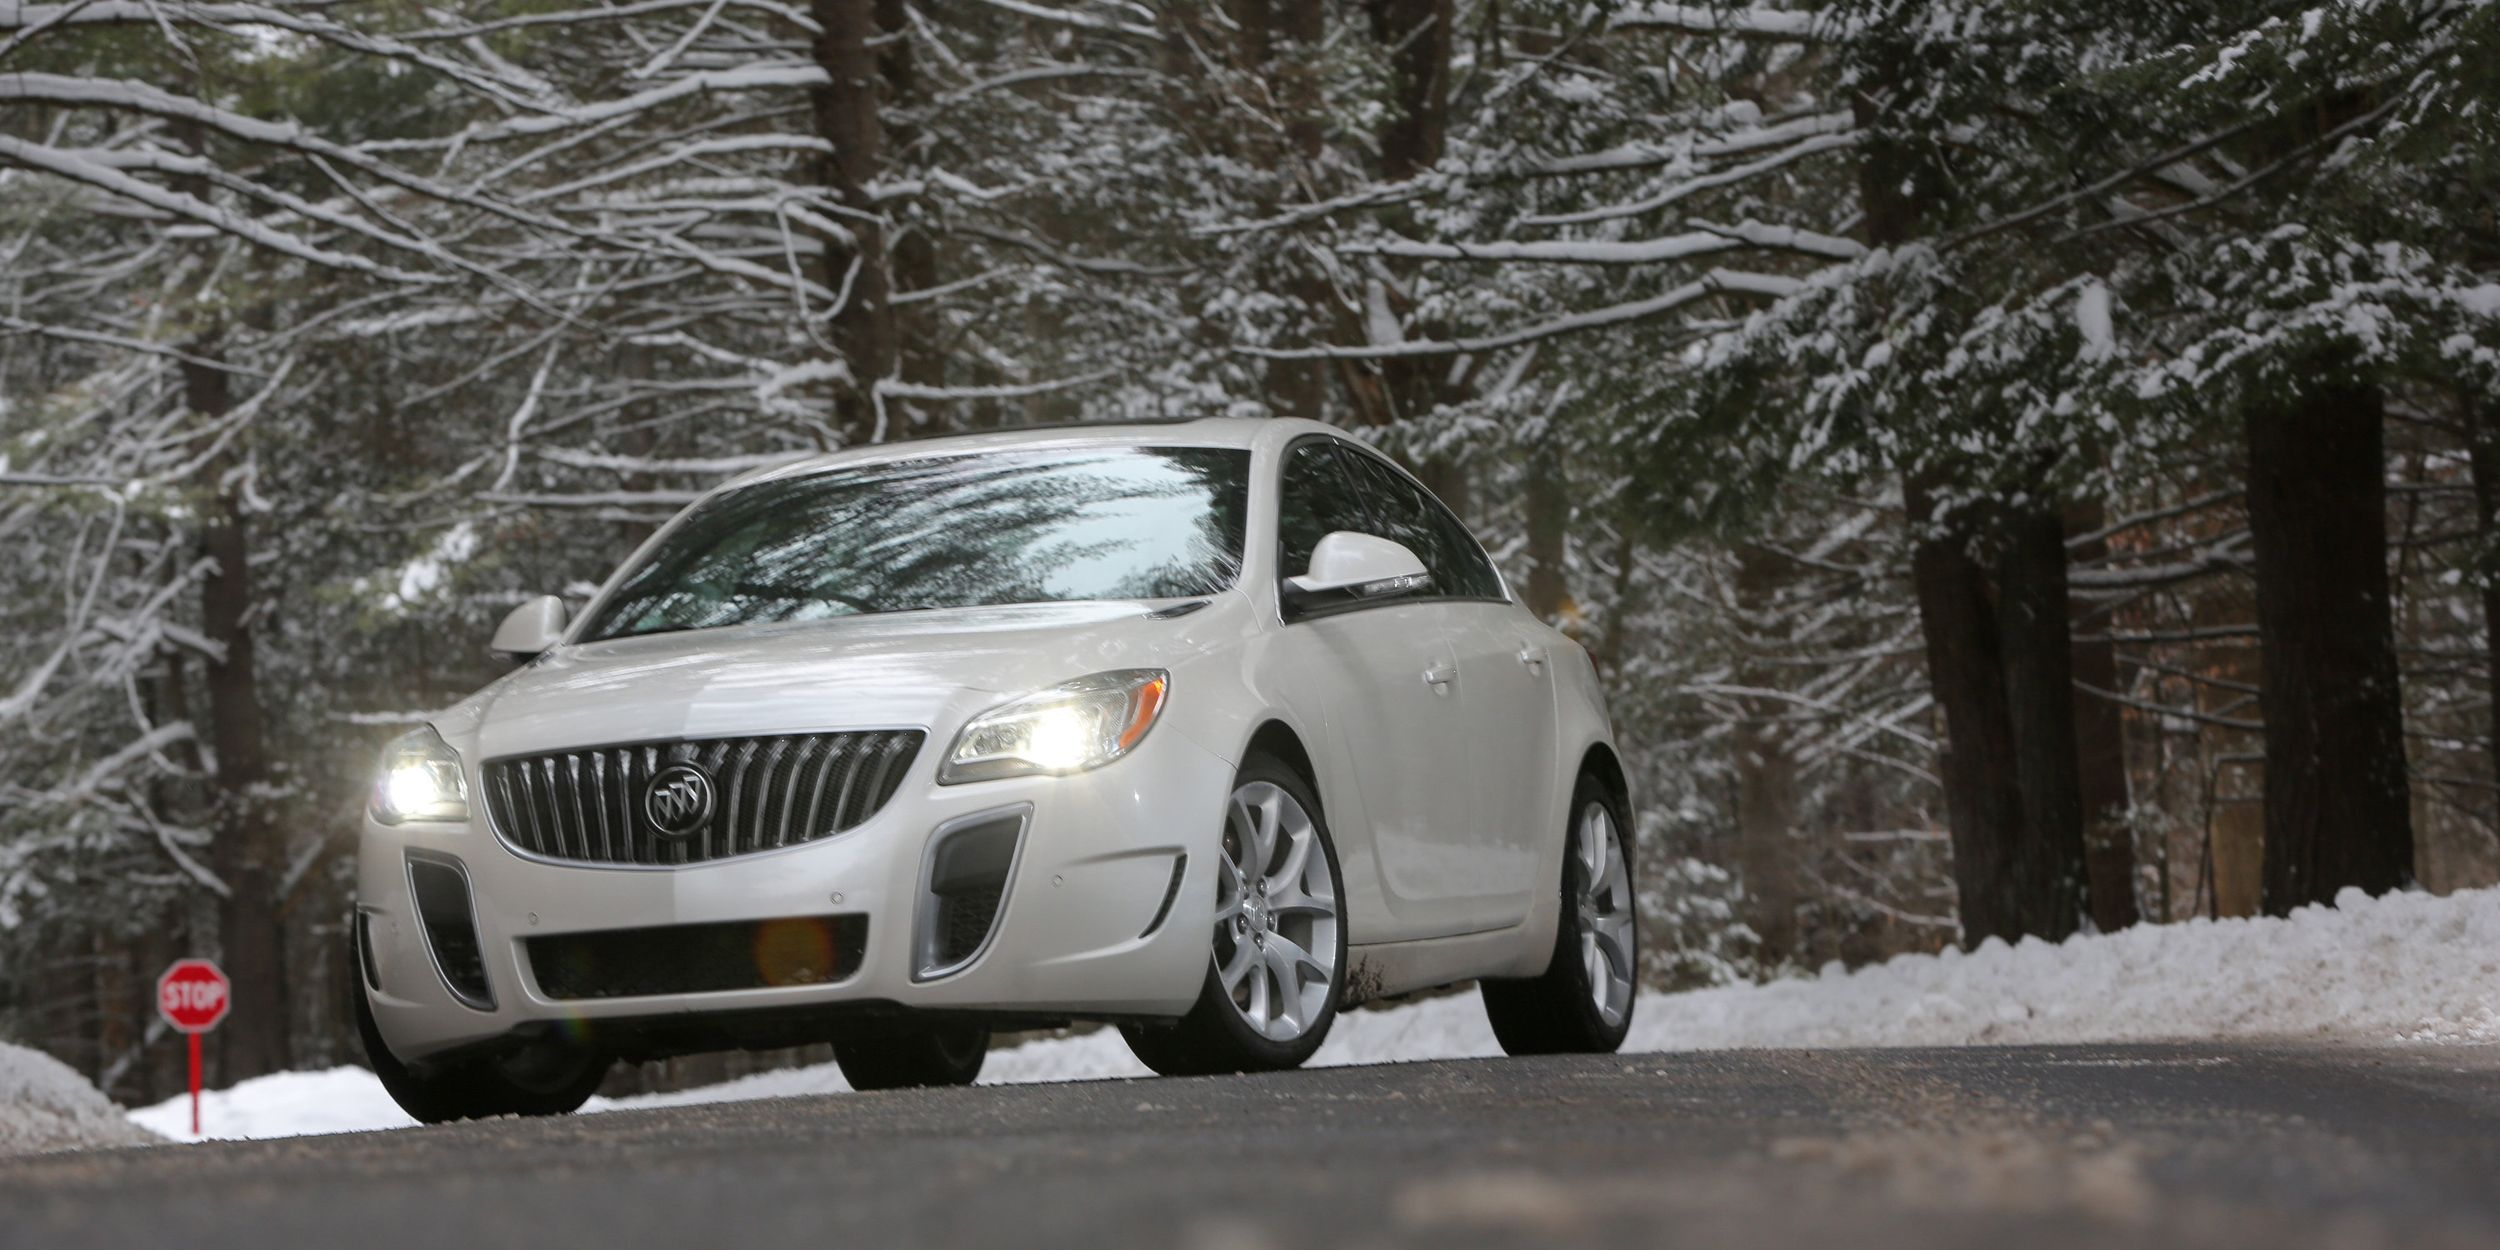 "<p>If you wanted a sporty and affordable sedan, the Regal is a great option. You can even get it <a href=""http://www.caranddriver.com/buick/regal"">with all-wheel drive or a stick shift</a>. It looks good, too: Handsome and sleek, with no design elements that are too controversial. Yet the sportier, rear-wheel-drive Cadillac ATS still saw better sales in 2015.</p>"